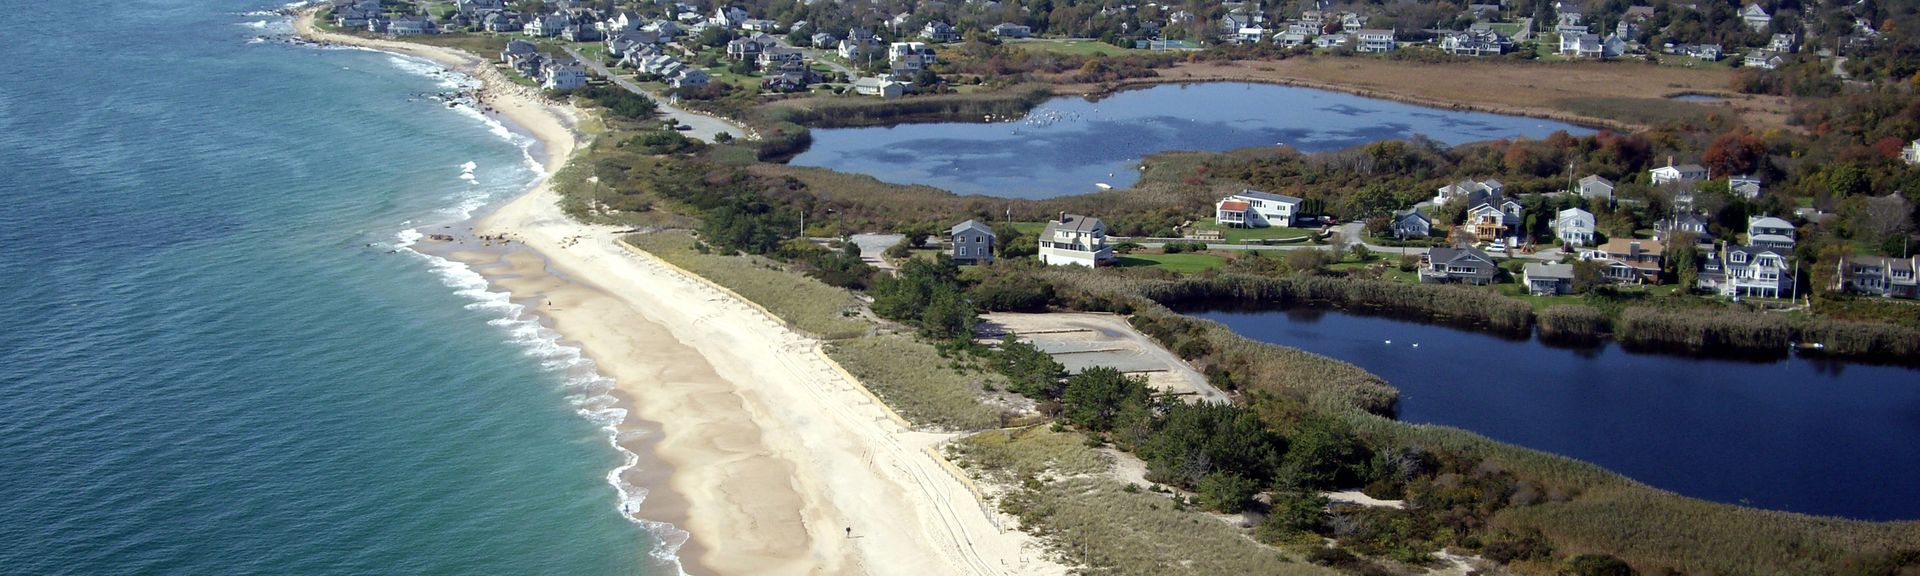 Charlestown Town Beach, Rhode Island, United States of America